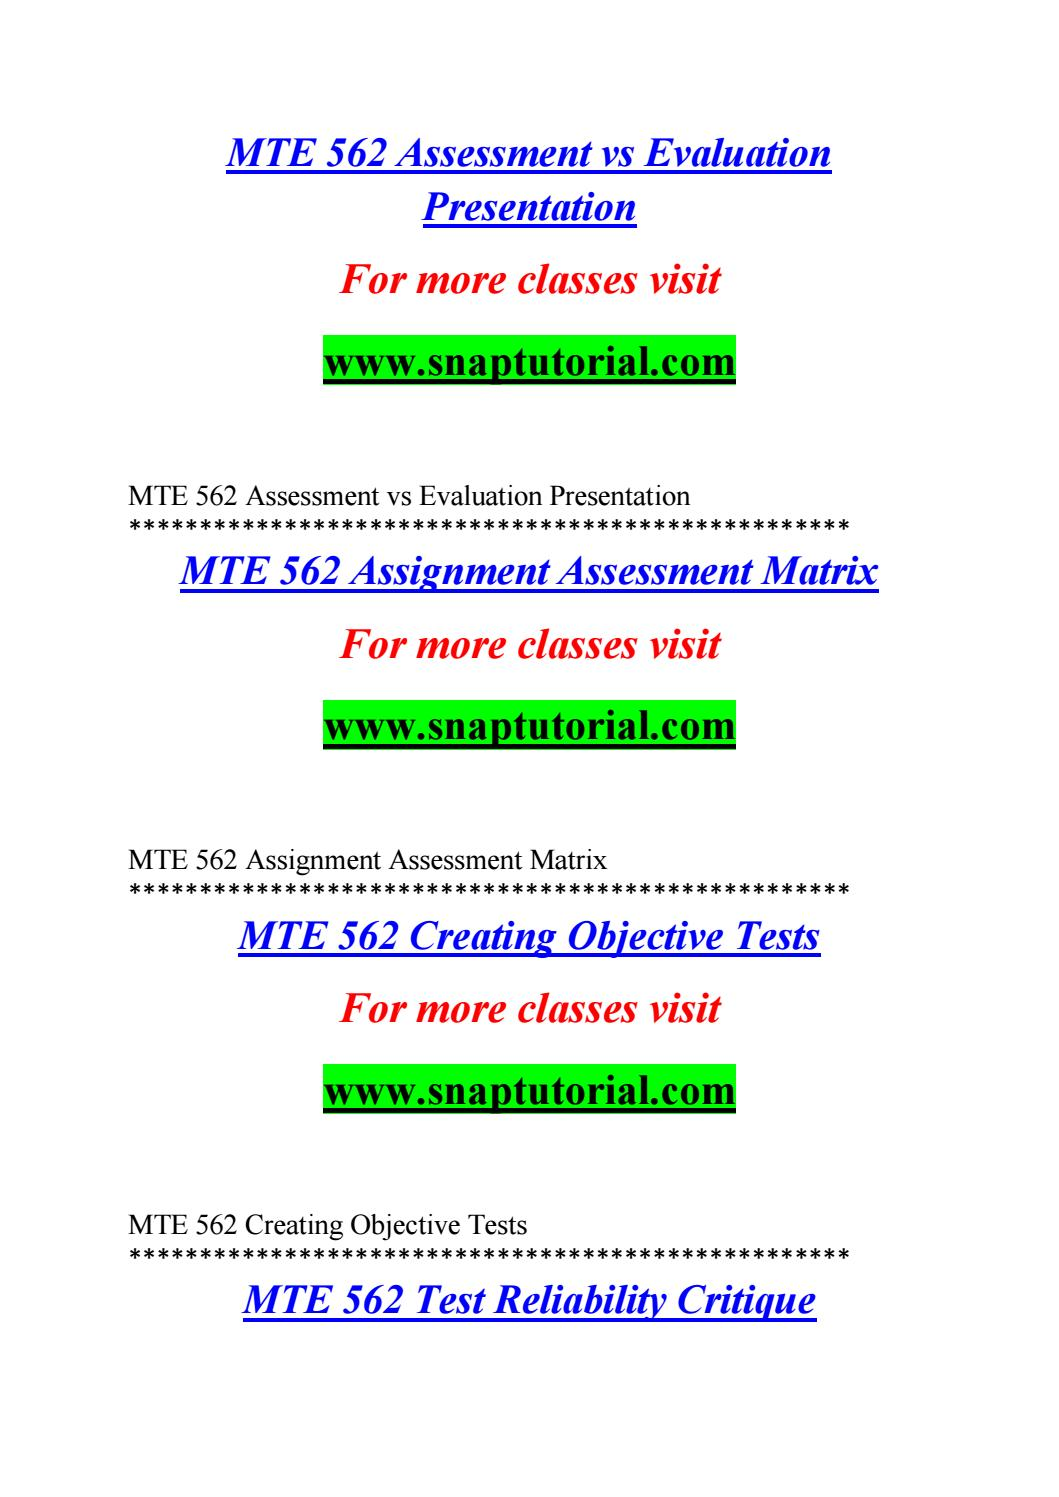 Mte 562 Enhance Teaching Snaptutorial Com By C U N N I N G H A M Barker Issuu It is done by the teacher, senior teacher and the supervisor at the end of the term or the whole year. issuu